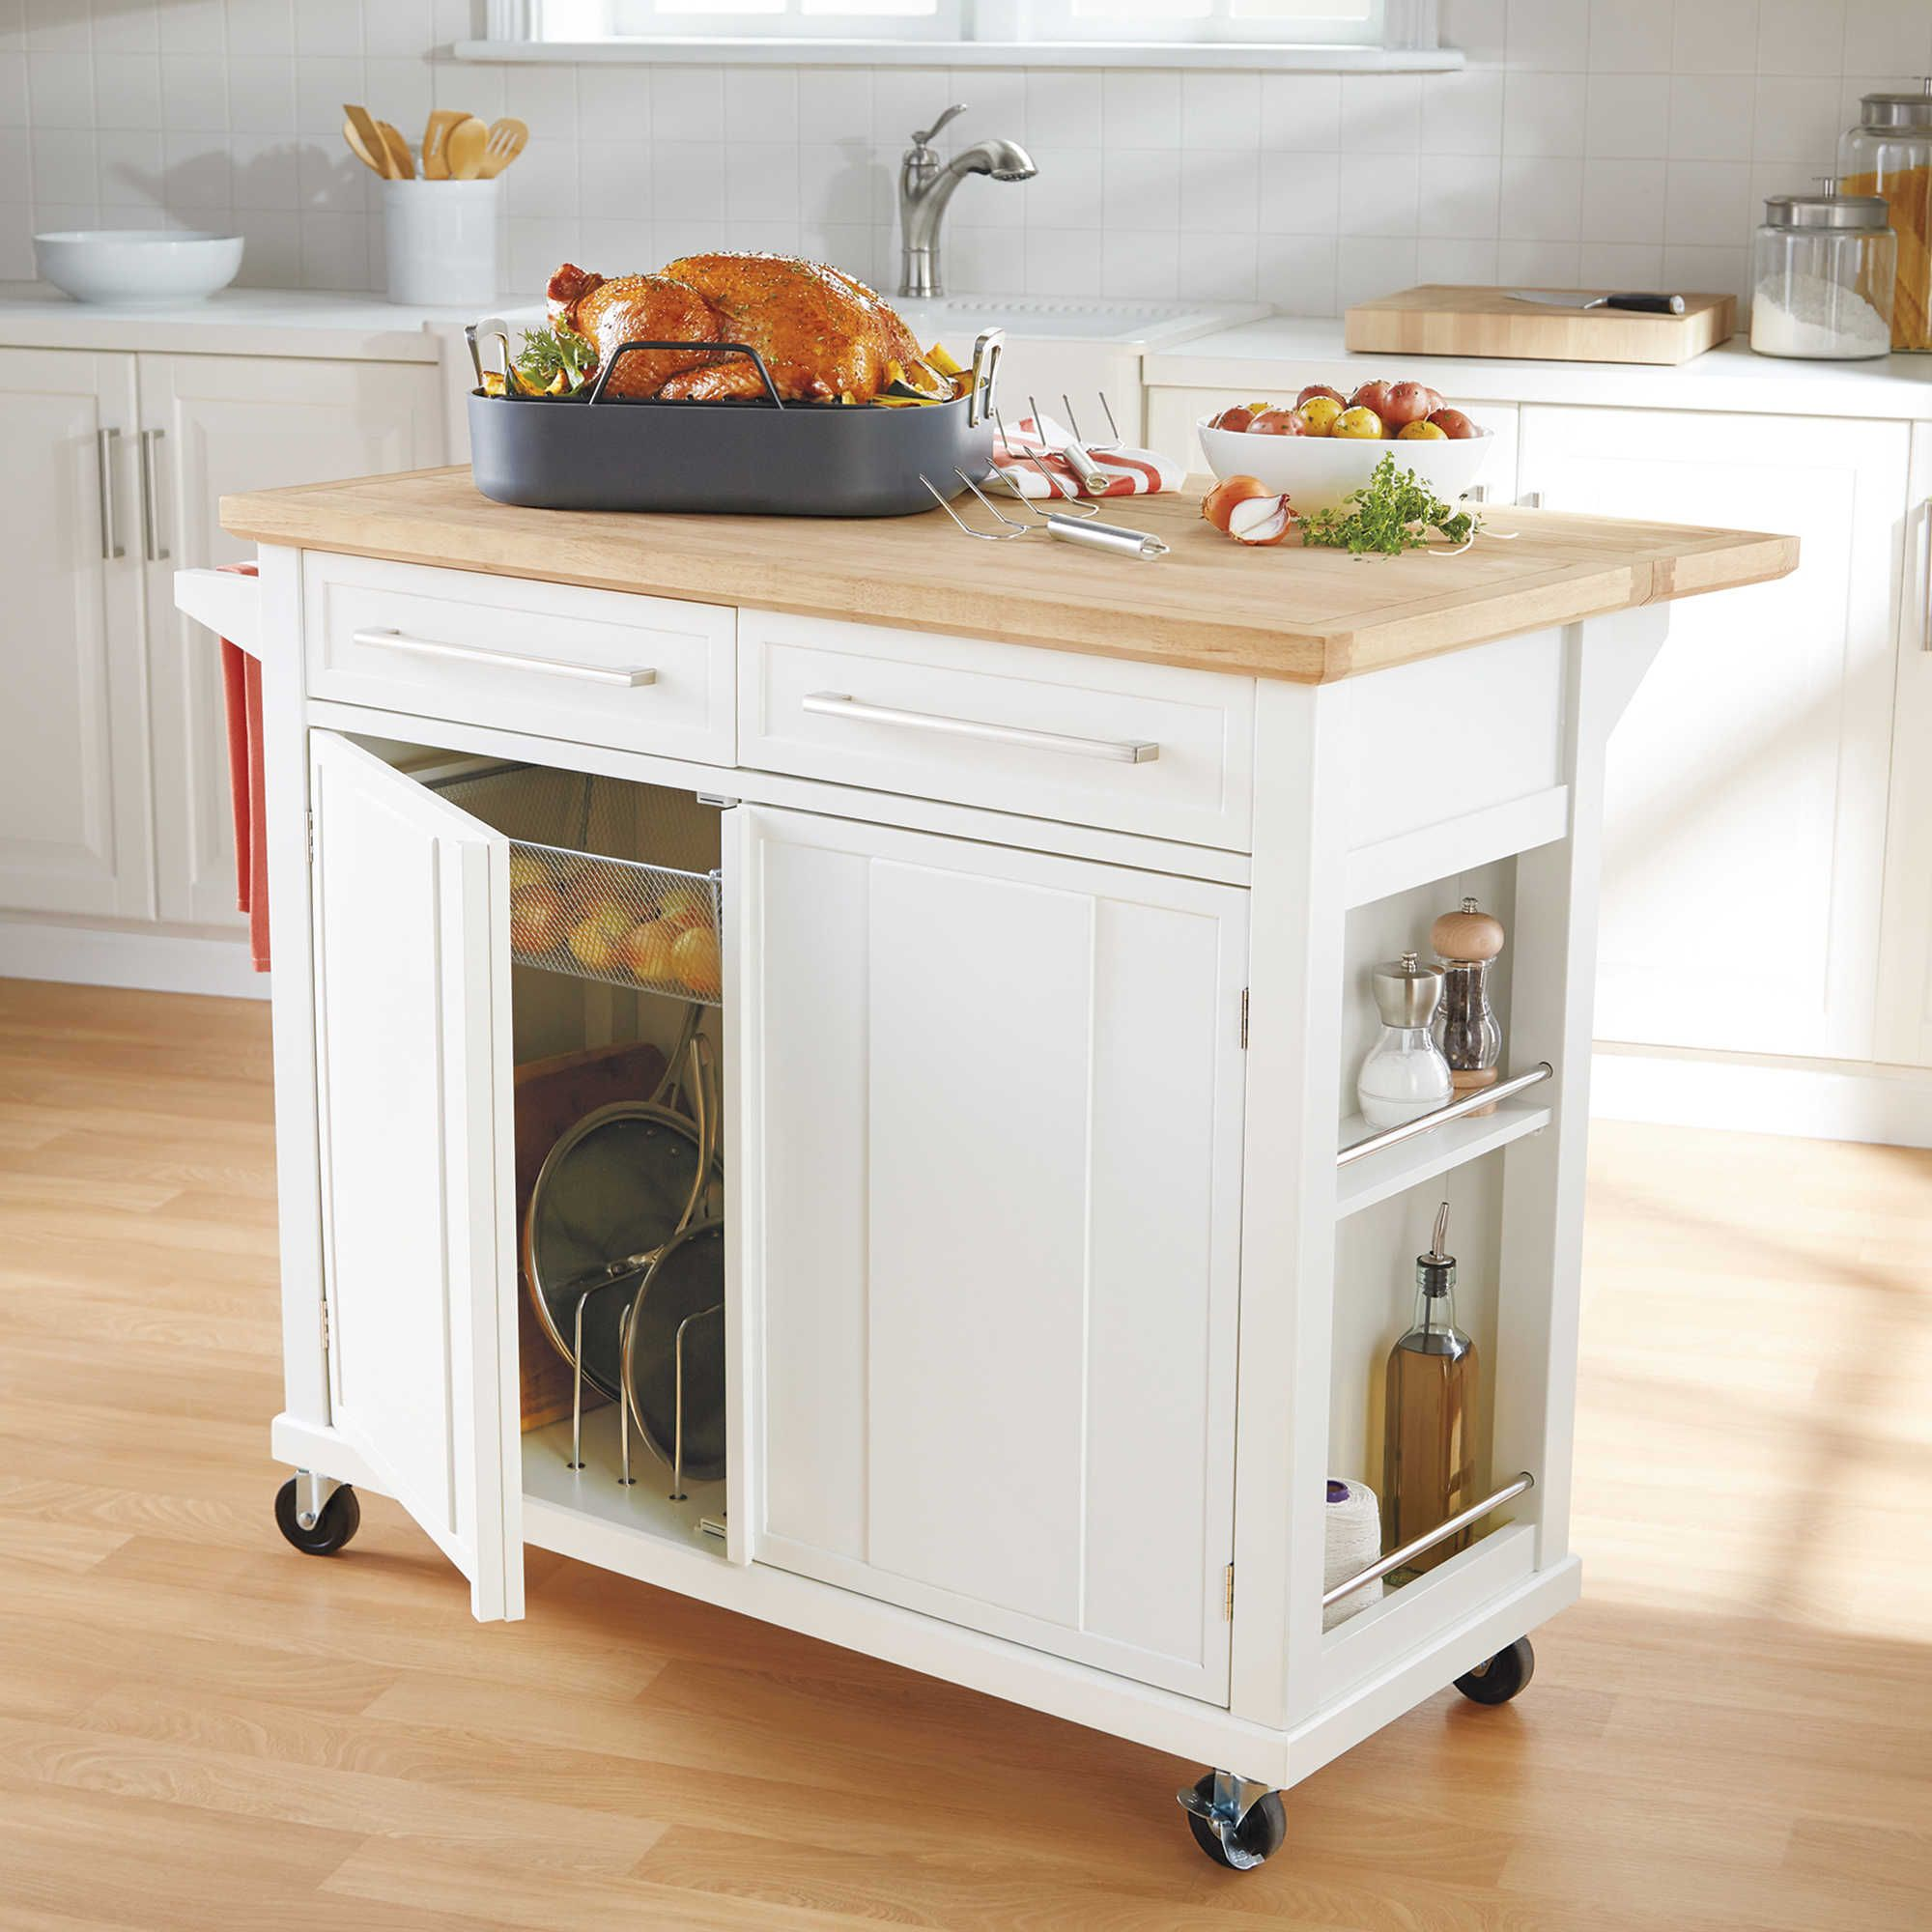 real simple rolling kitchen island in white rolling kitchen island real simple and bath on kitchen island ideas kitchen bar carts id=79956